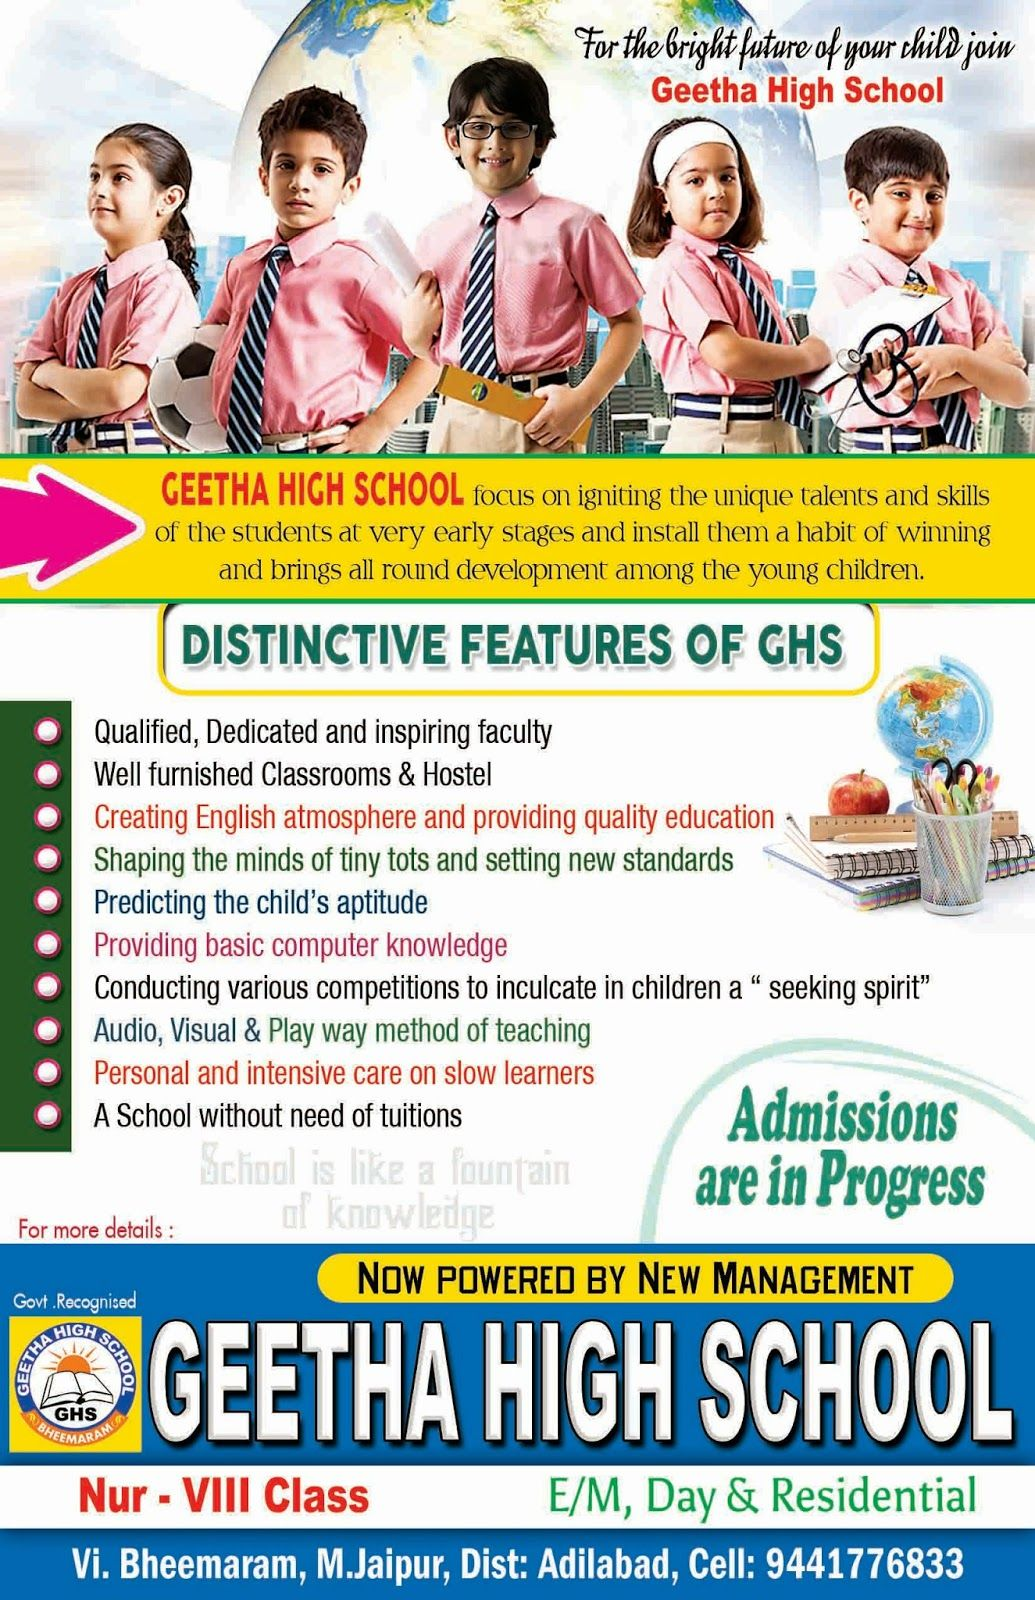 NaveenGFXcom Geetha High School Brochure Design Brochures - High school brochure template